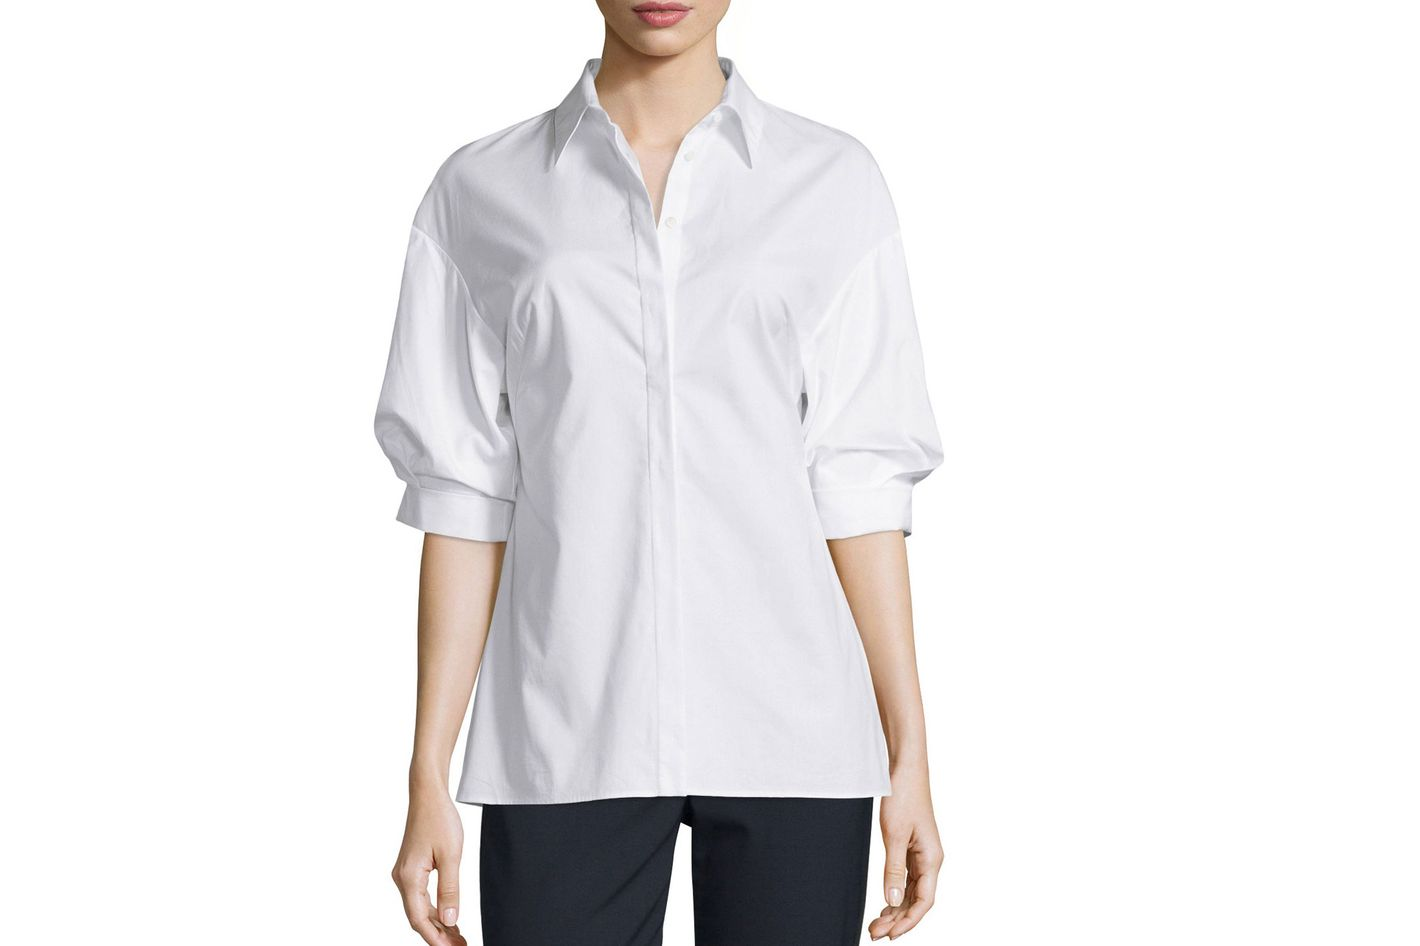 3.1 Phillip Lim Poplin Puffed-Sleeve Top